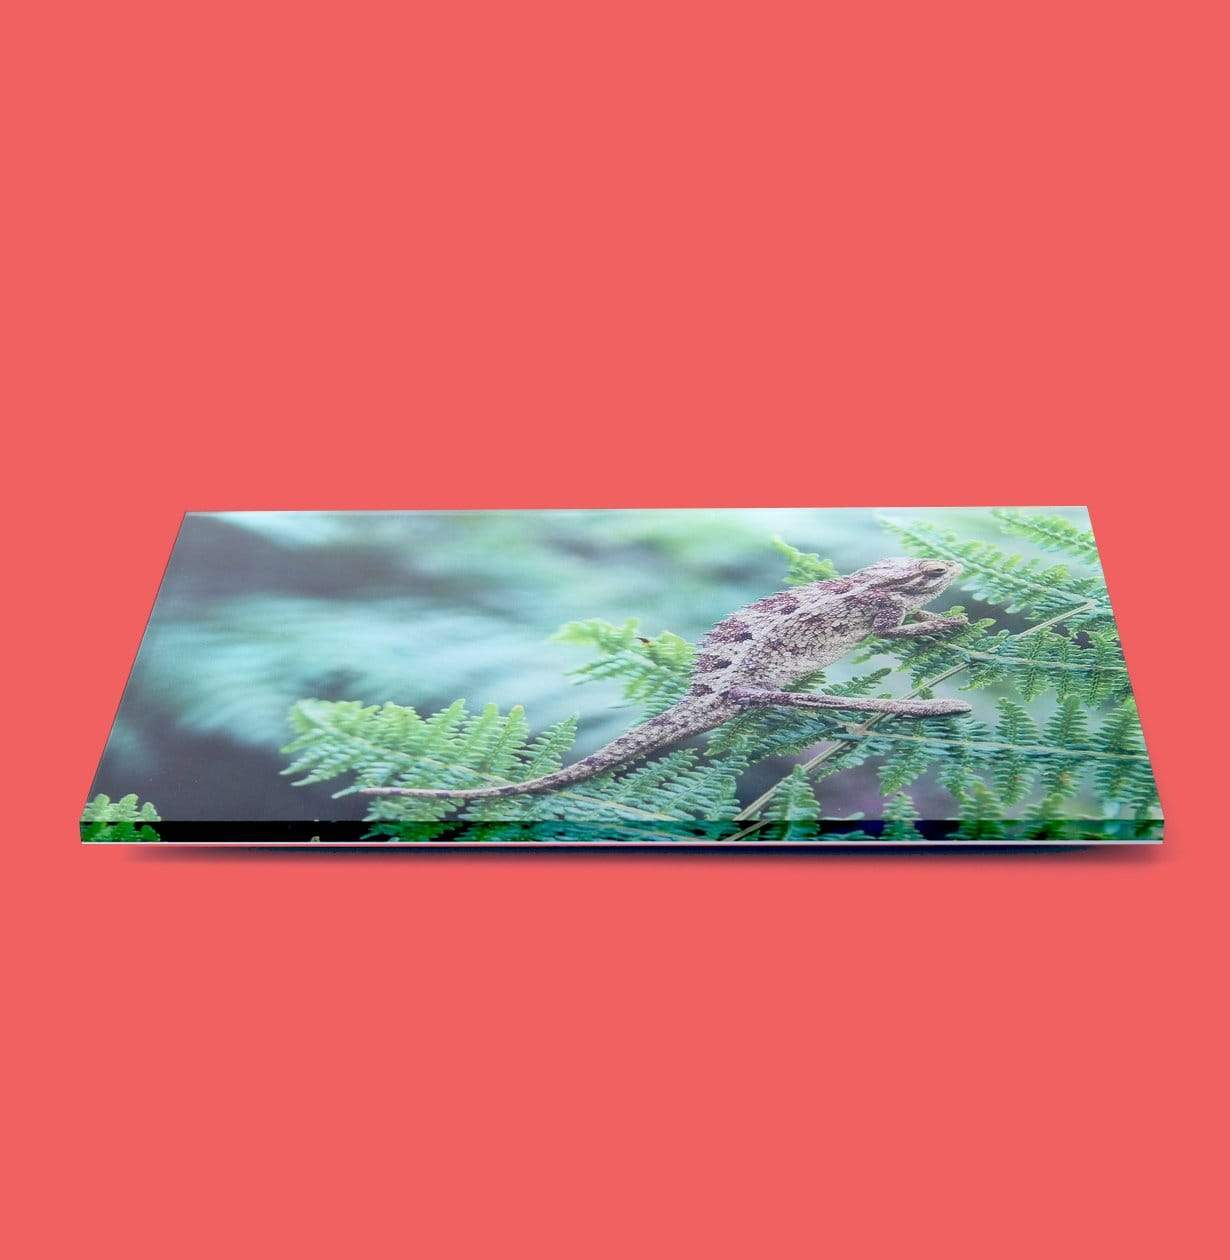 Side-View of Acrylic Photo Print